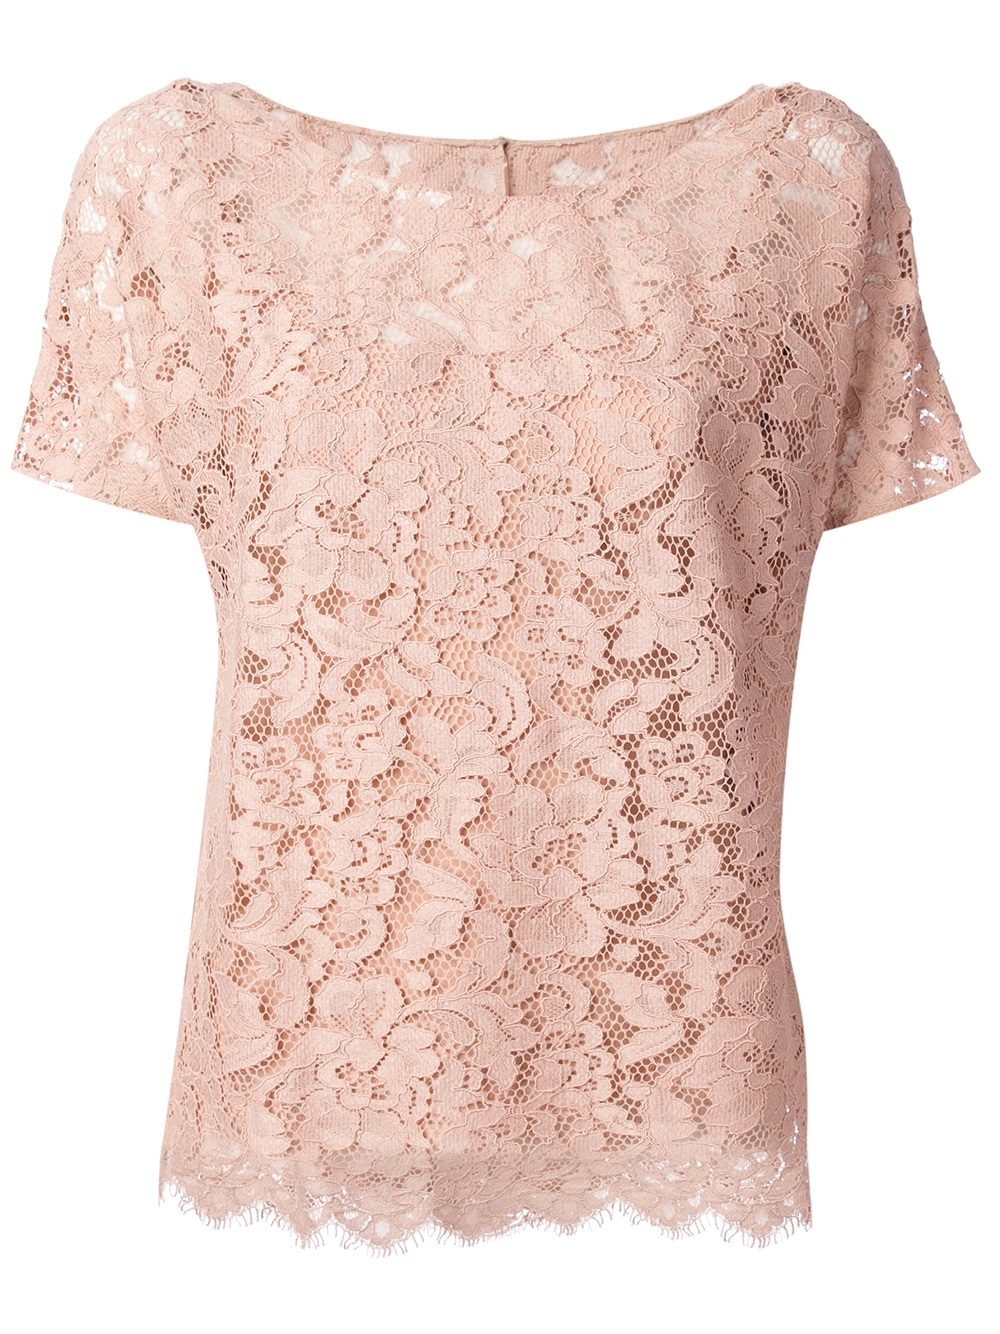 Dolce & Gabbana Lace Top in Pink - Lyst